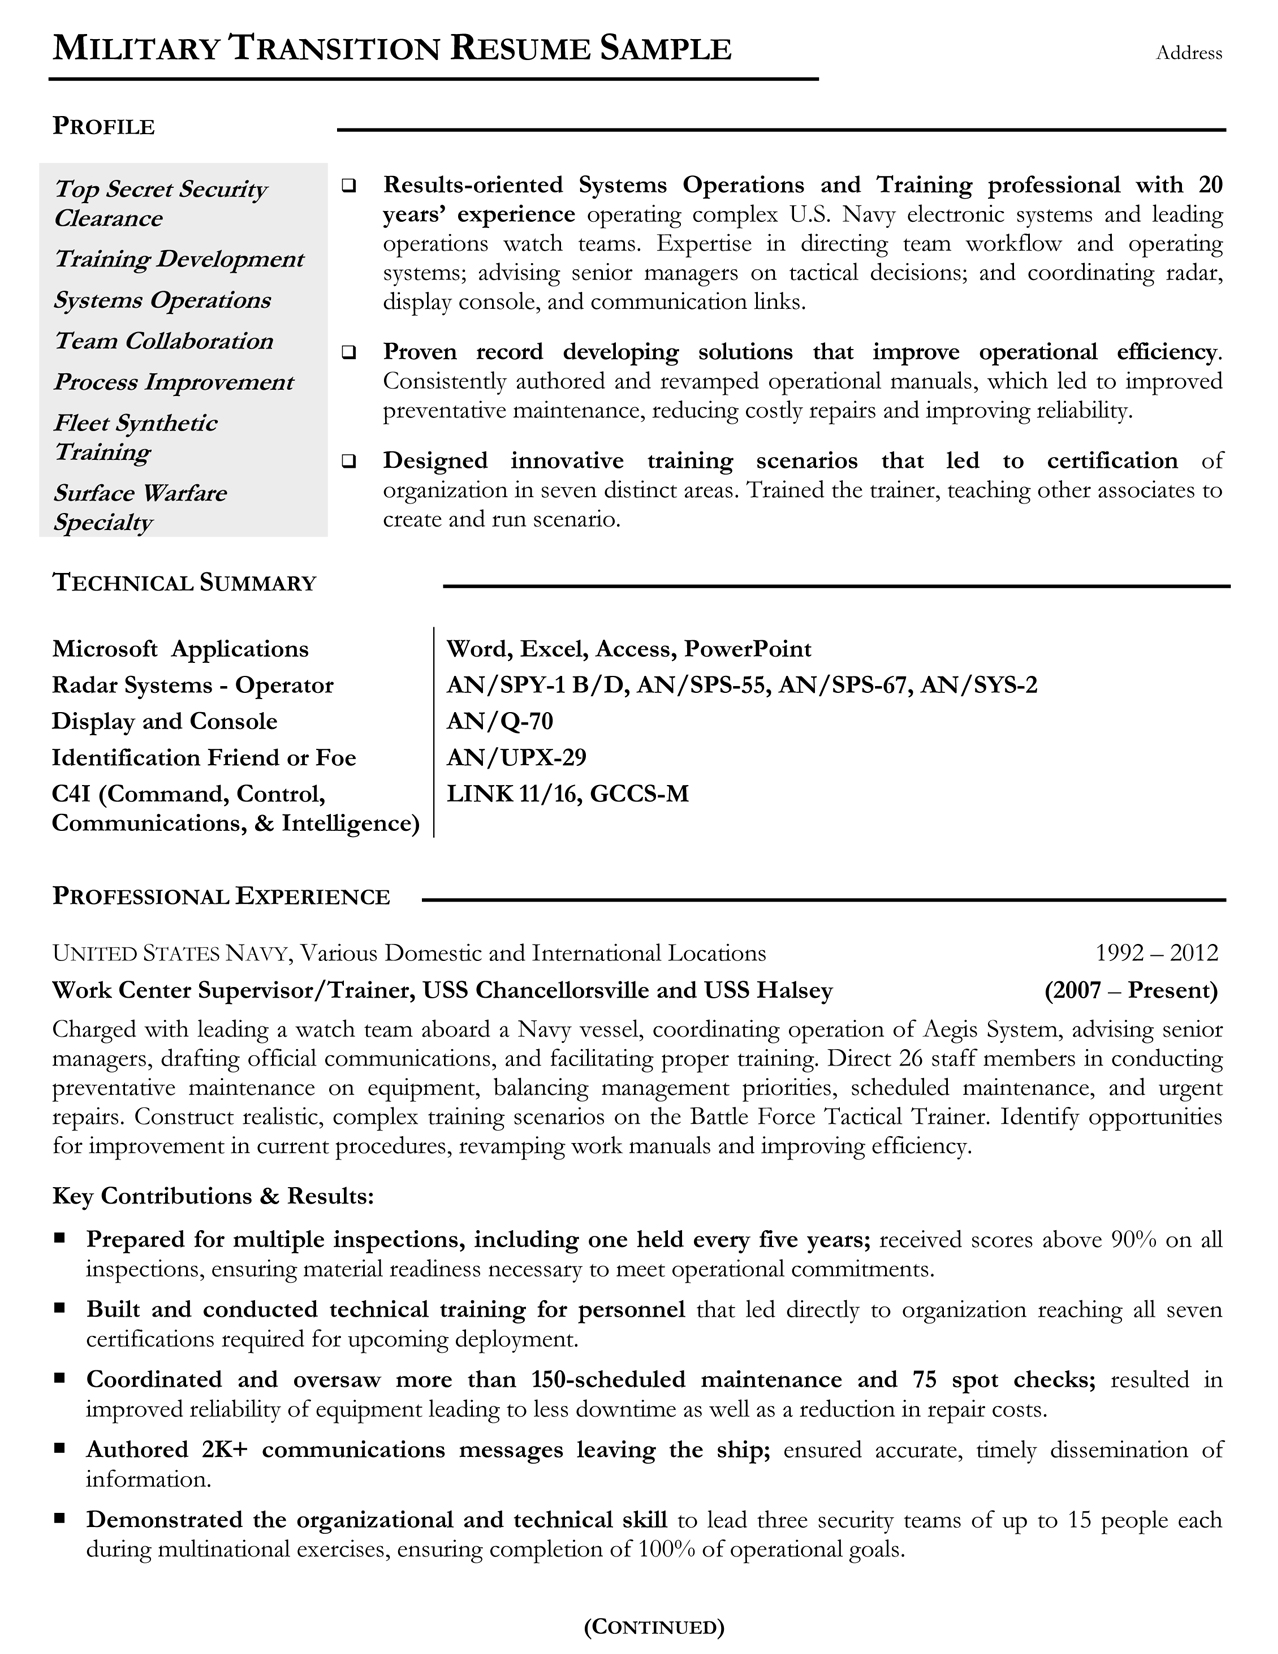 best resume writing service military services mtr sample caribbean format oracle r12 Resume Military Resume Writing Service